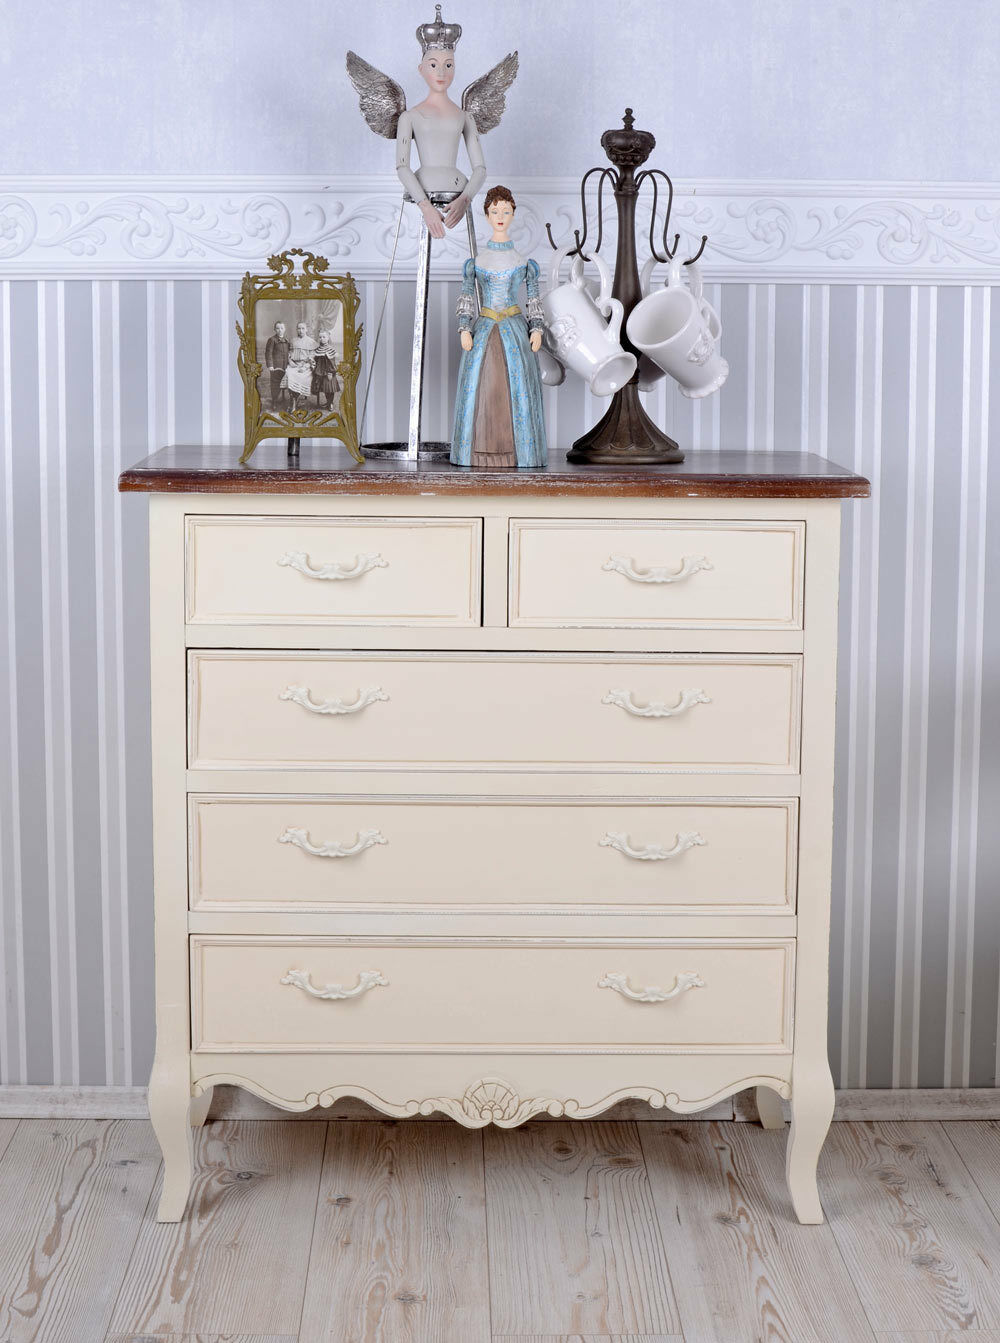 Nuit commode tiroirs Armoire Antique Commode Style Maison De Campagne Linge Commode Blanc